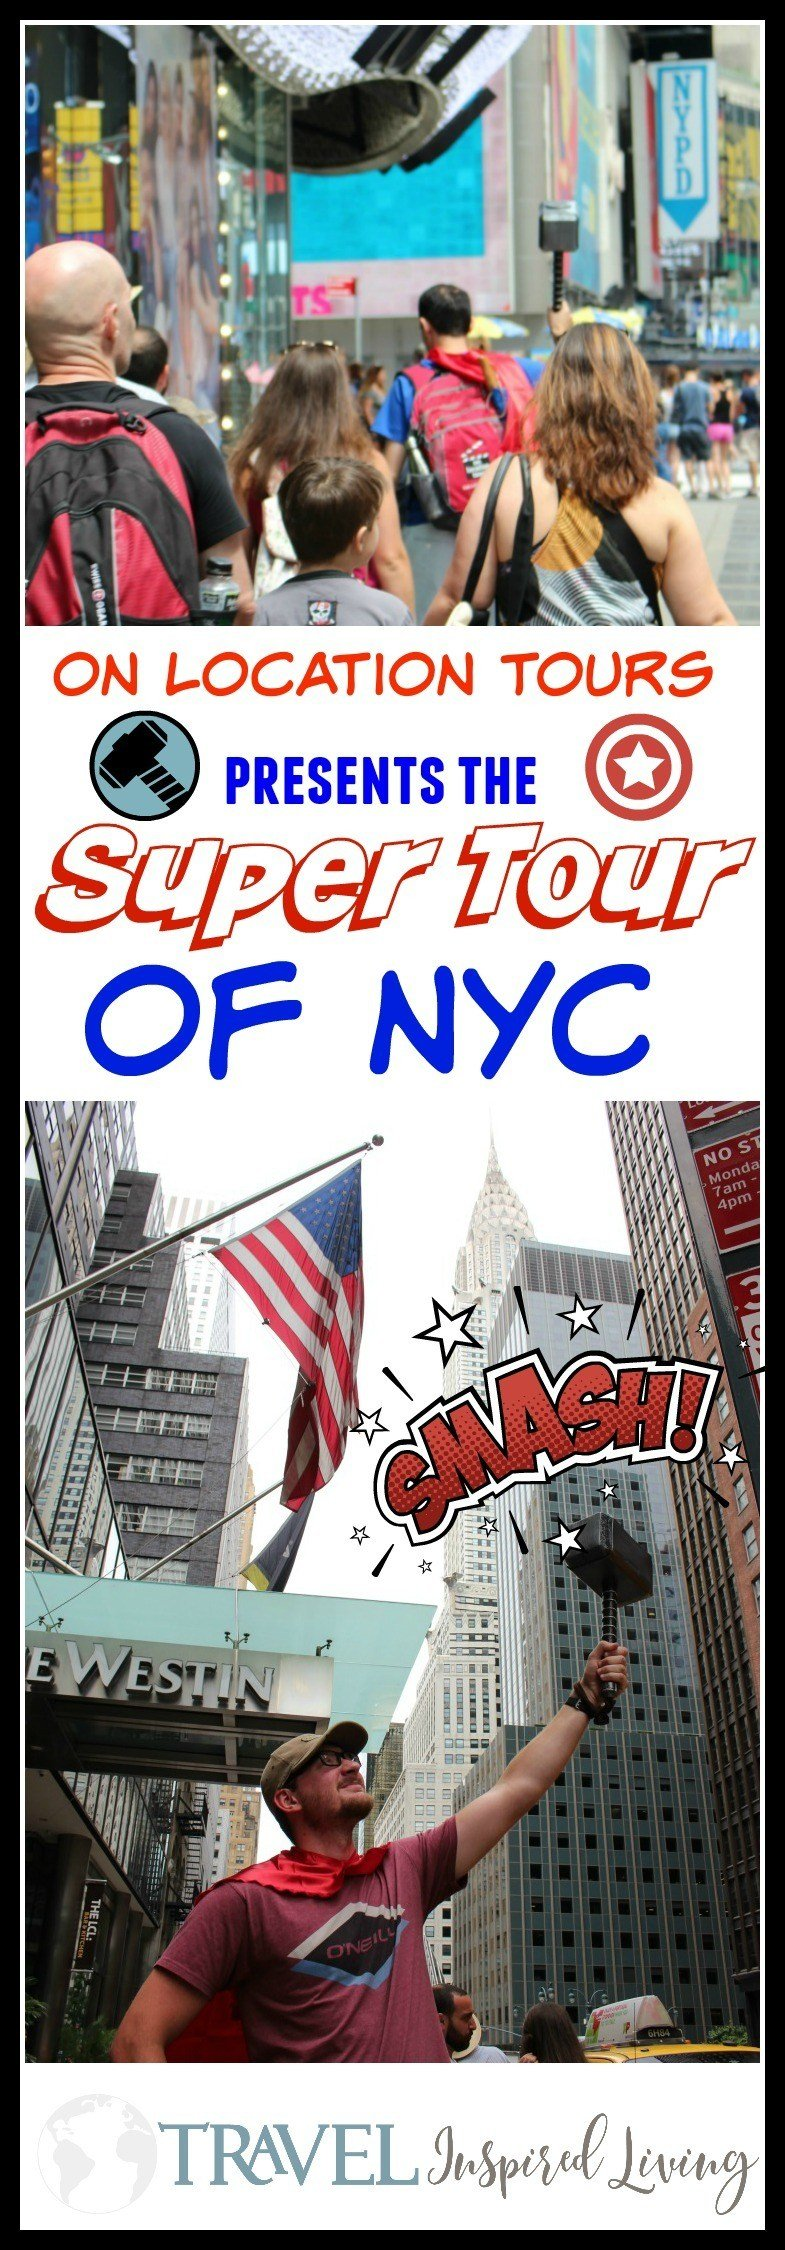 Experience New York City on The Super Tour of NYC with On Location Tours- a chance to see the filming sites of your favorite Super Hero movies.